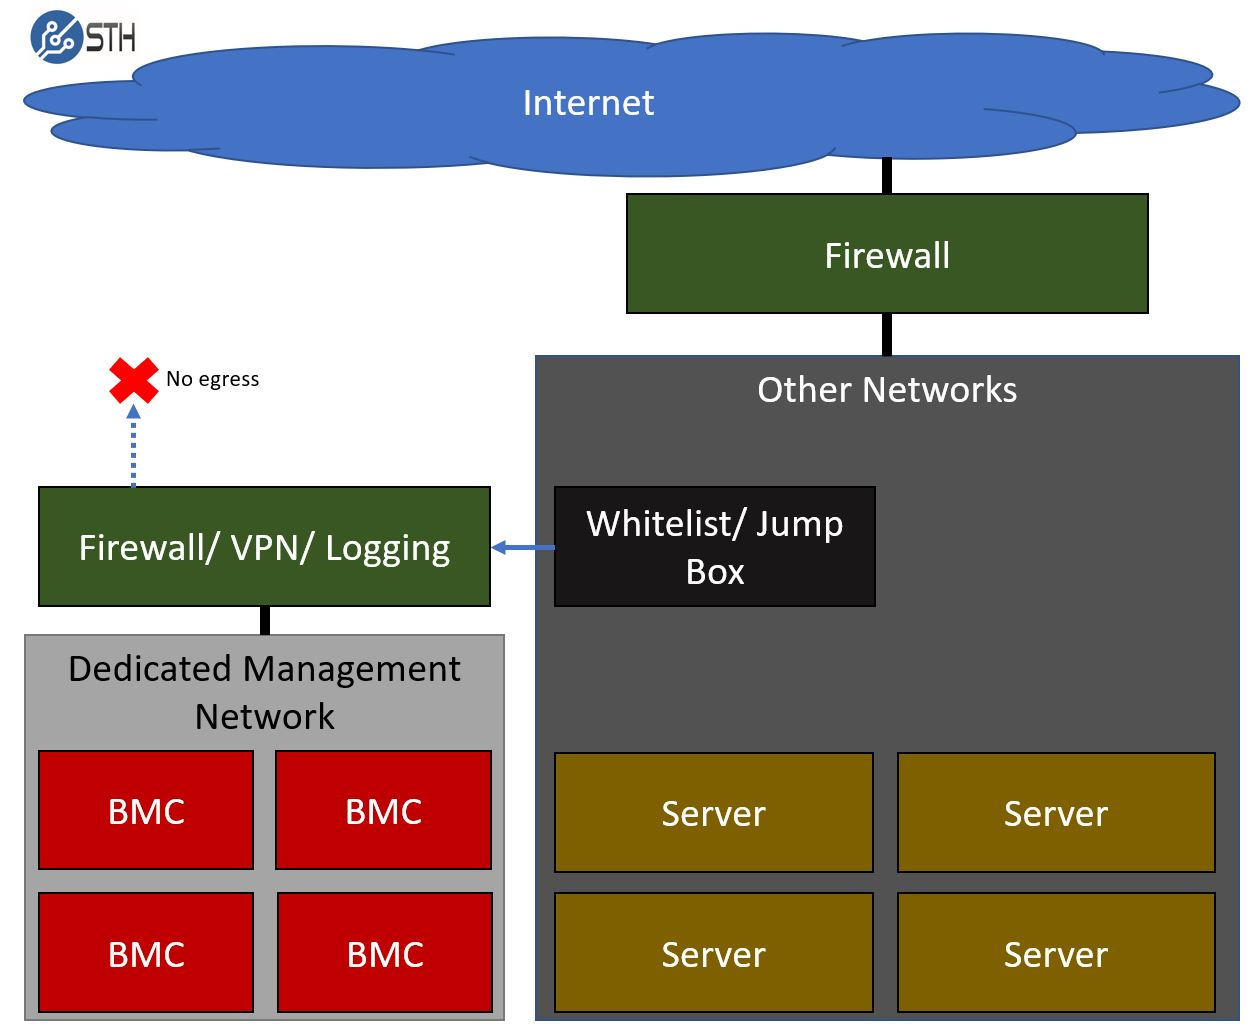 BMC IPMI Networking Basic Dedicated Management Network